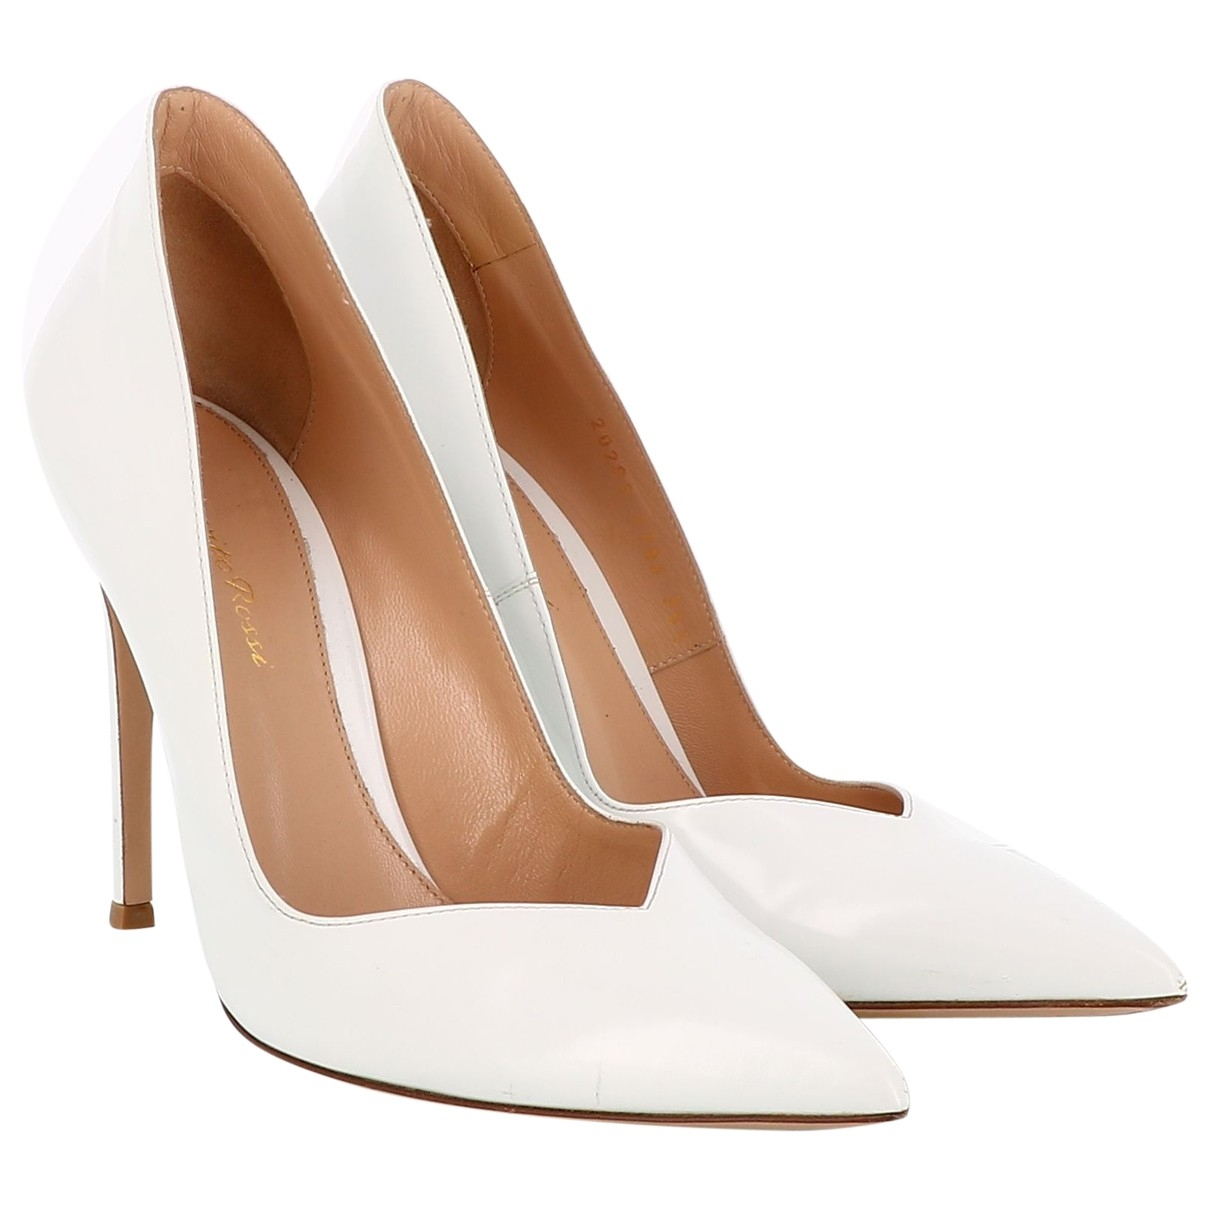 Gianvito Rossi \N White Leather Heels for Women 38.5 EU